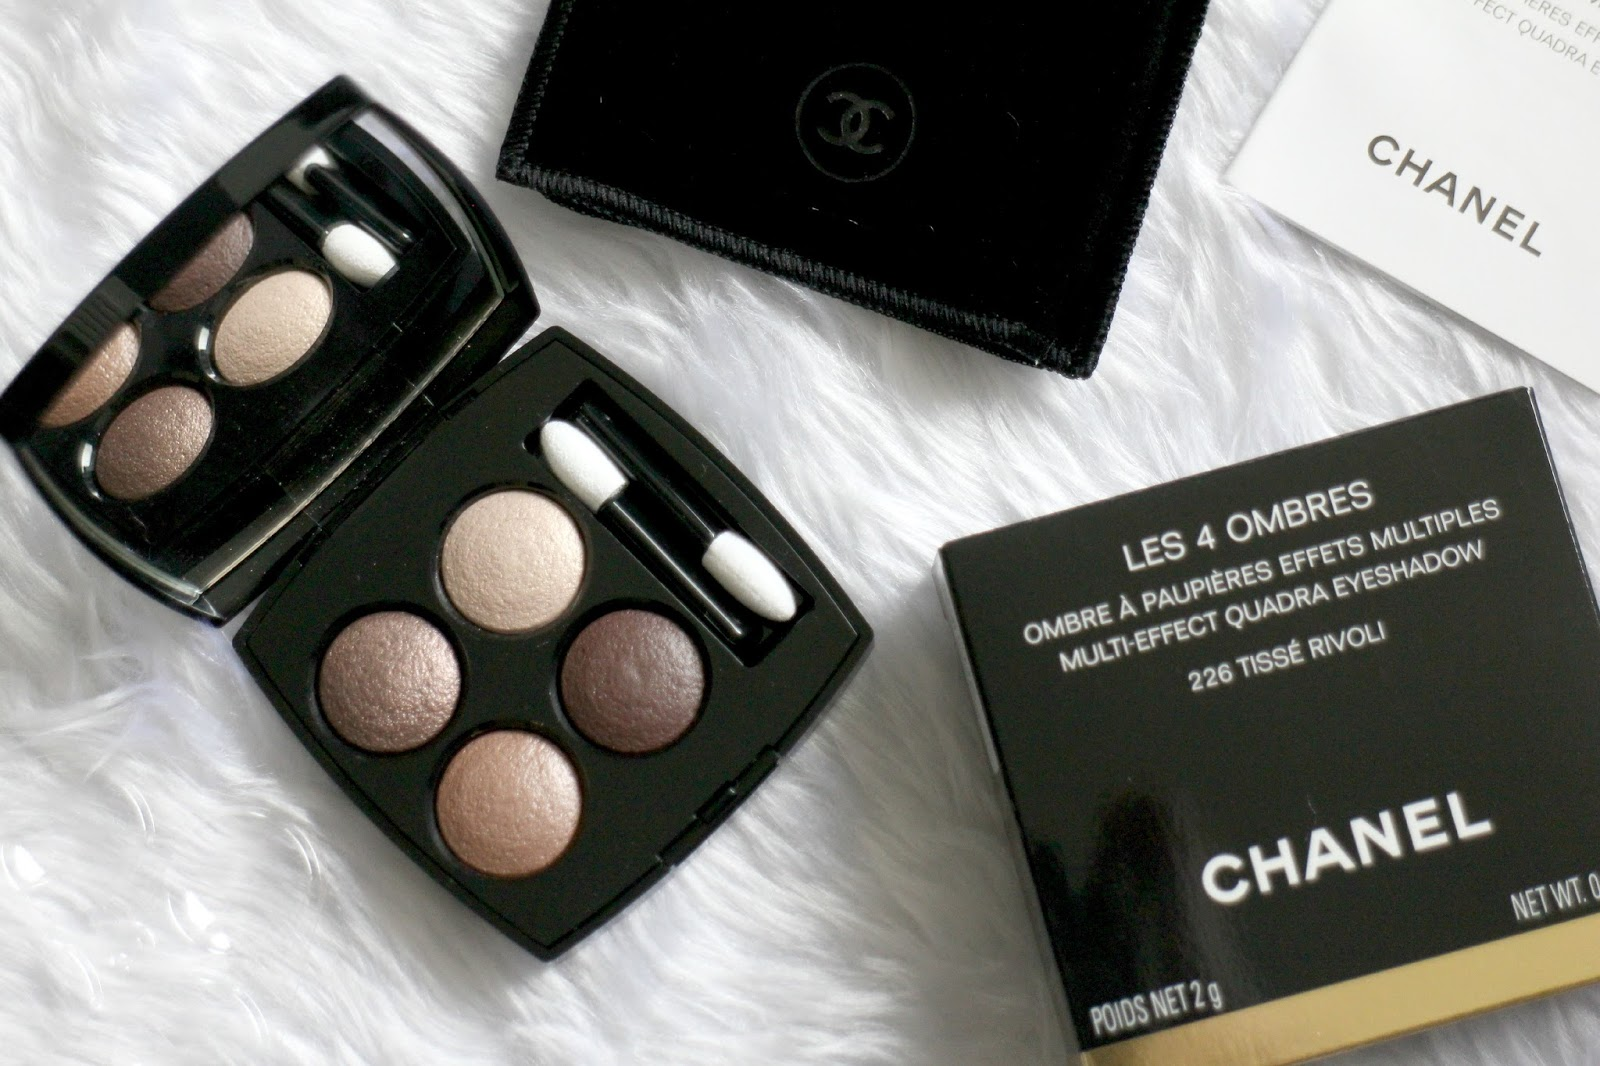 Chanel Les 4 Ombres Multi-Effect Quadra Eyeshadow in Tisse Rivoli